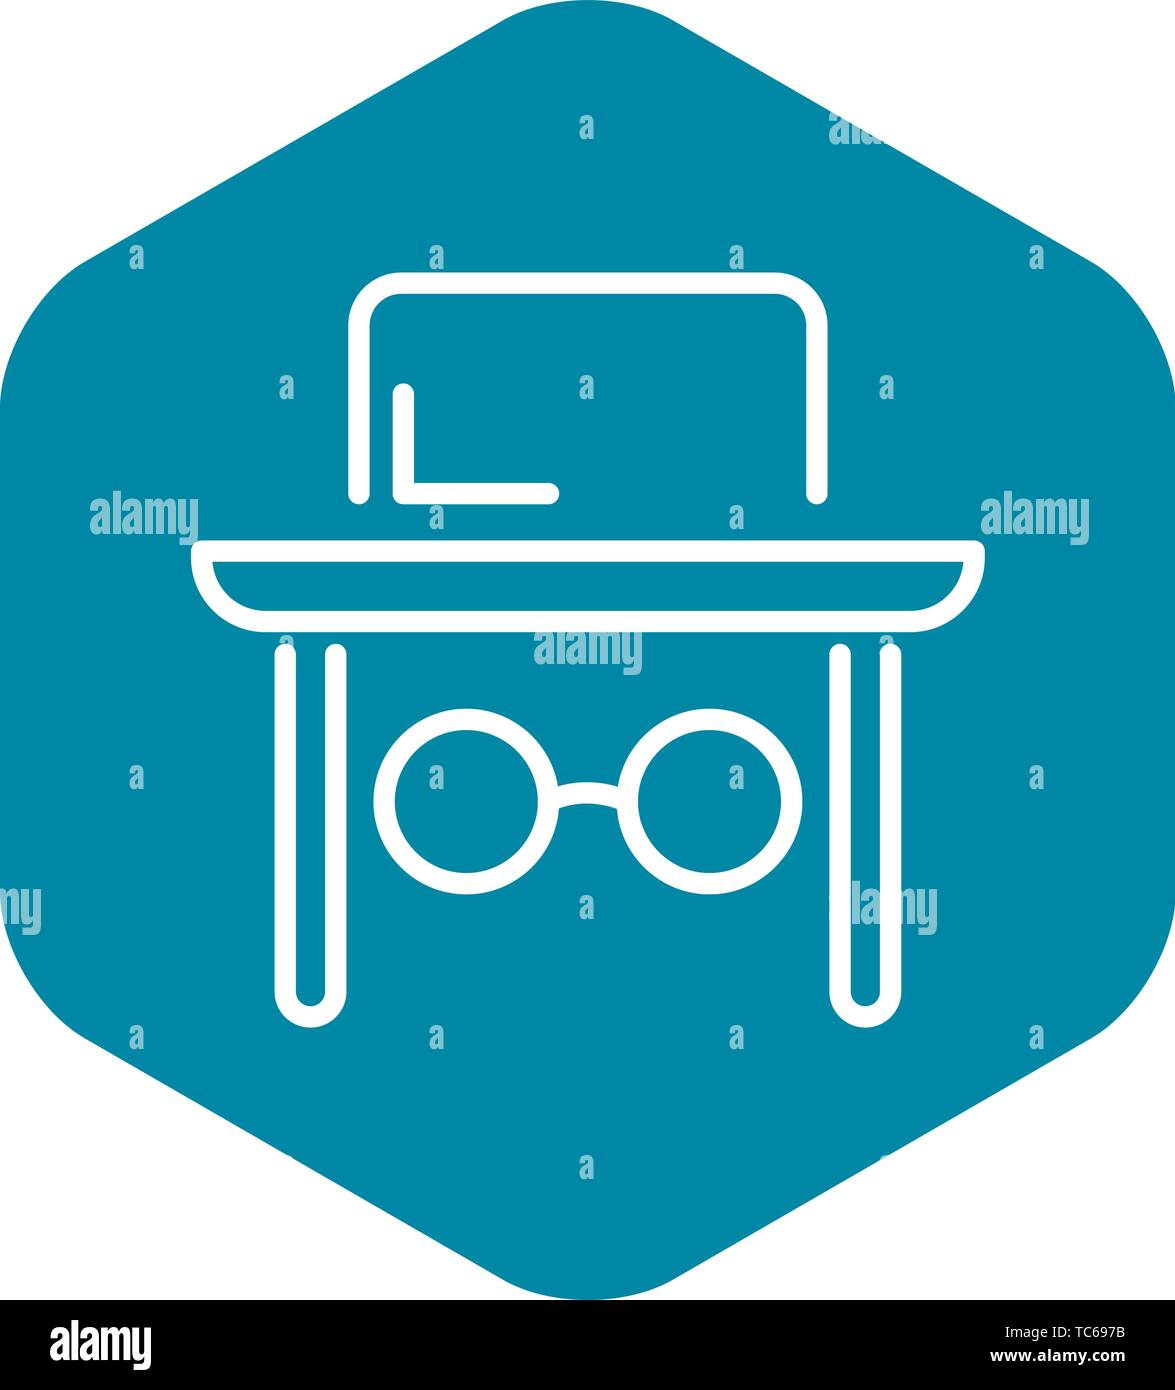 Jewish man face icon, outline style - Stock Vector